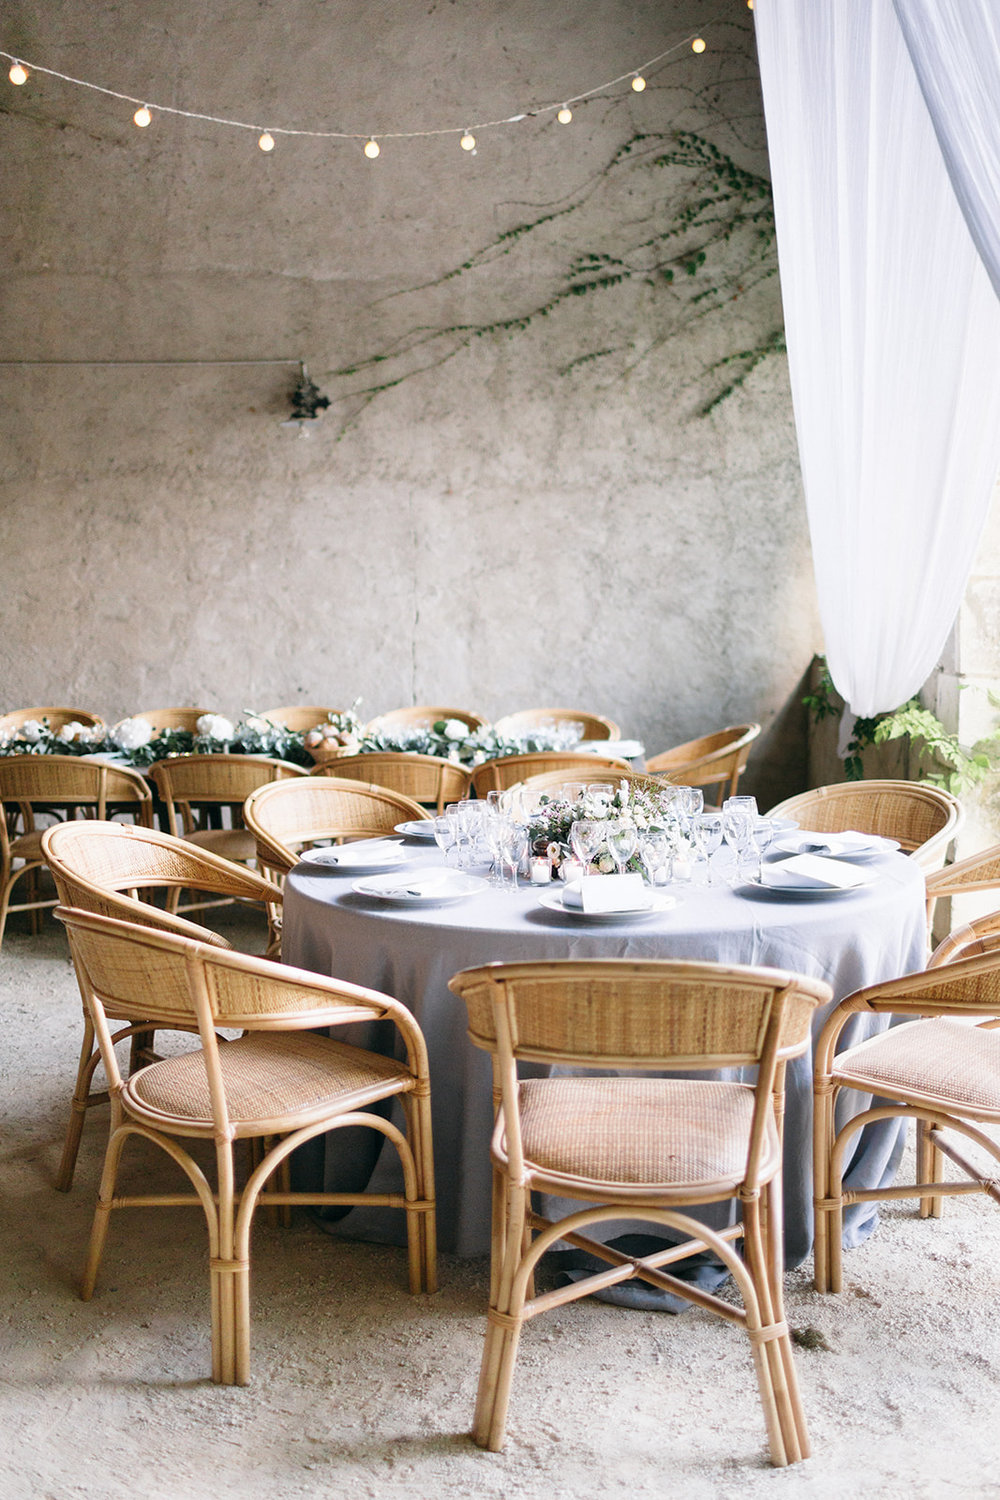 French Chateau Wedding, Events by Reagan, France Wedding, Destination Wedding Planner, Table setting